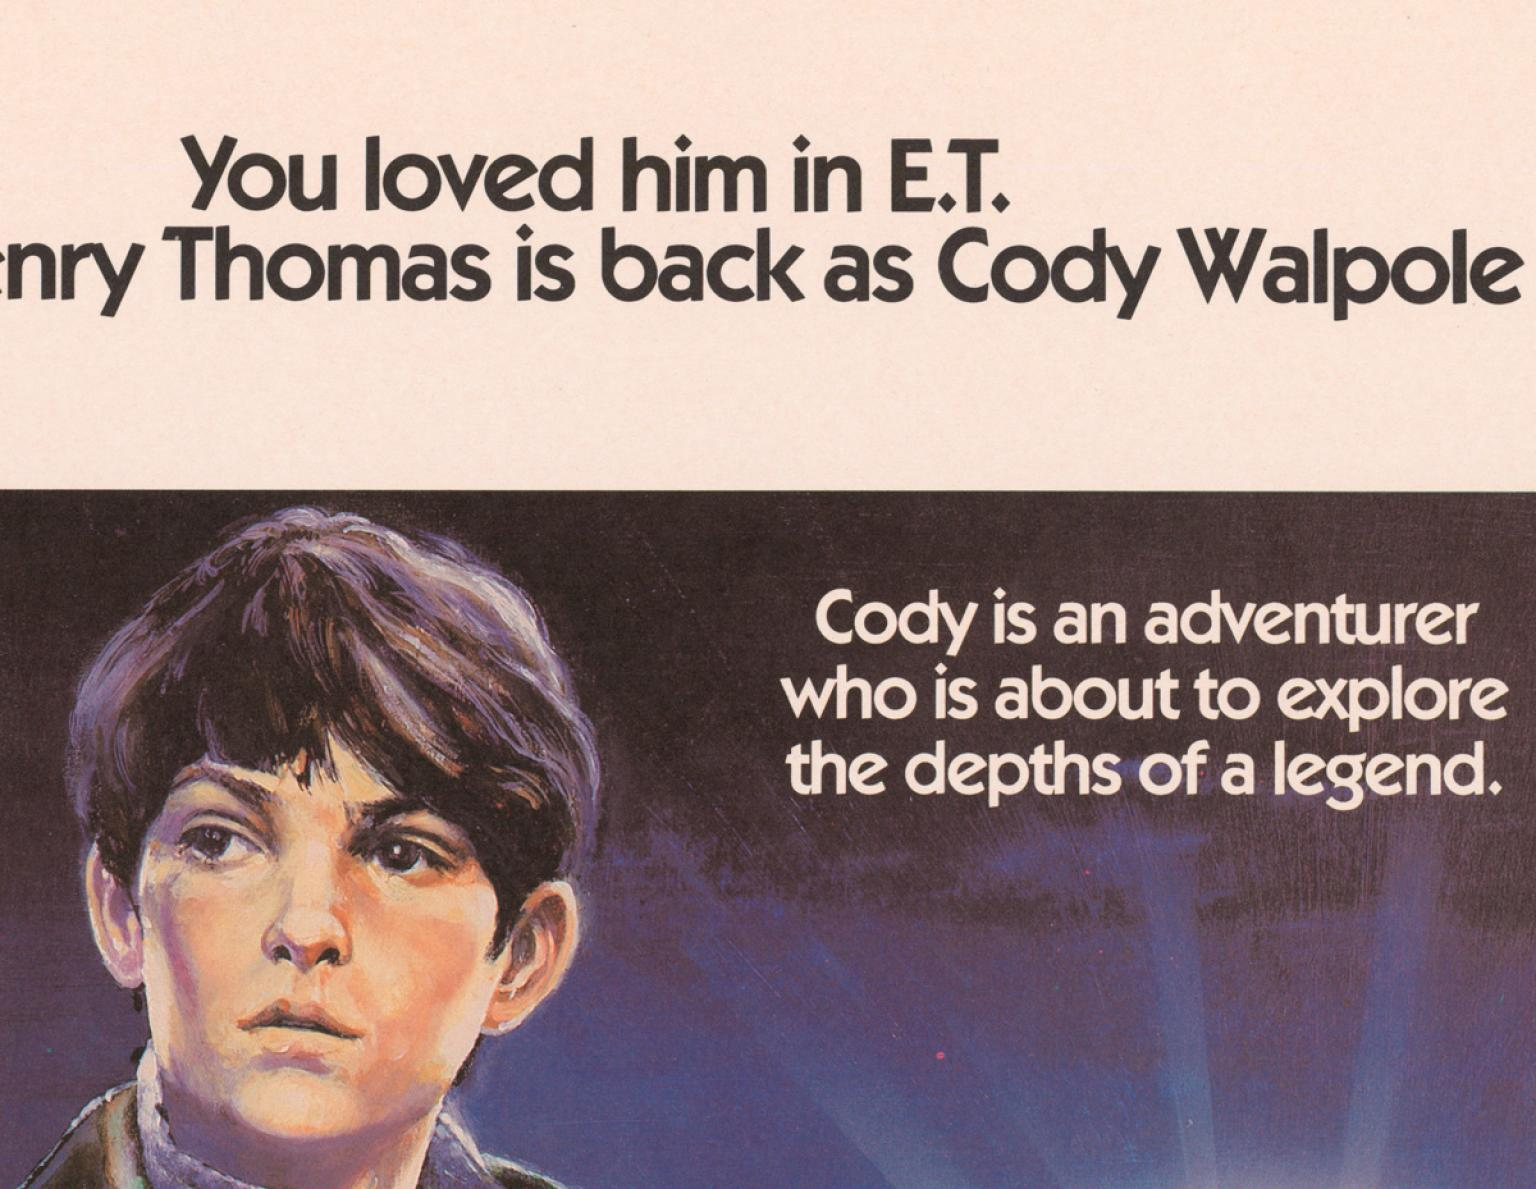 Close up of a young boy's face. Writing above his head says 'You loved him in E.T. Henry Thomas is back as Cody Walpole.' Writing at the side says 'Cody is an adventurer who is about to explore the depths of a legend'.